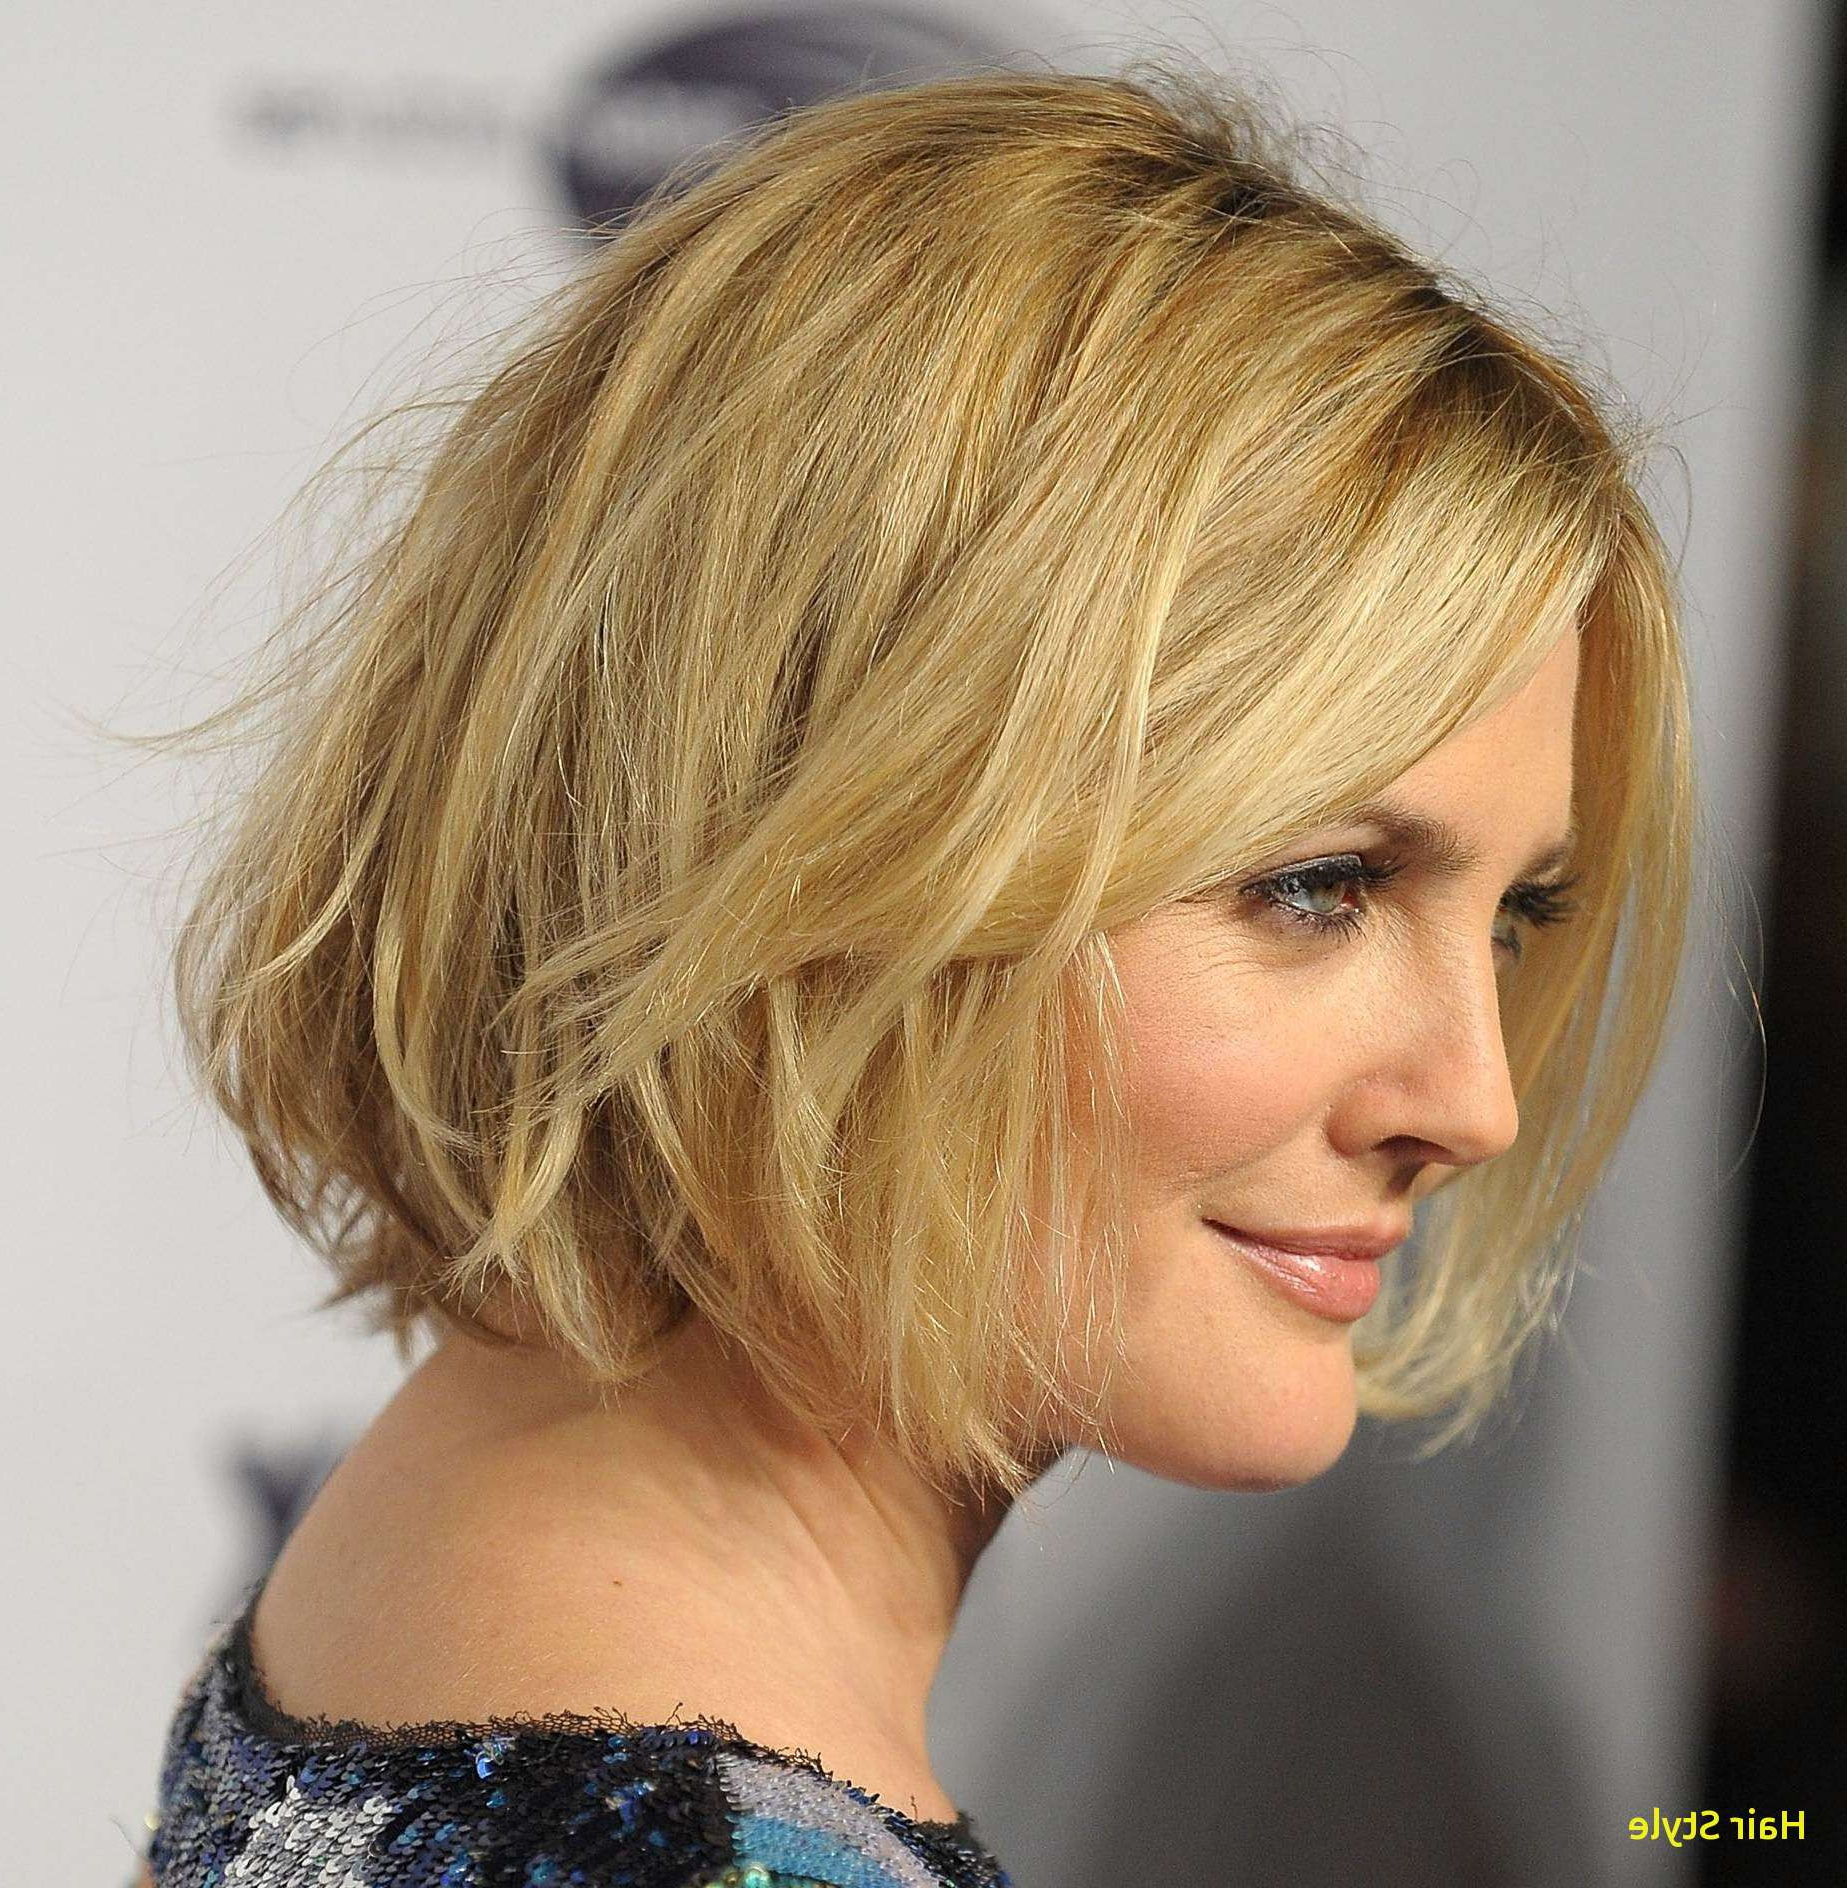 Short Feminine Hairstyles Inspirational Best Short To Medium Throughout Short To Medium Feminine Layered Haircuts (Gallery 2 of 20)